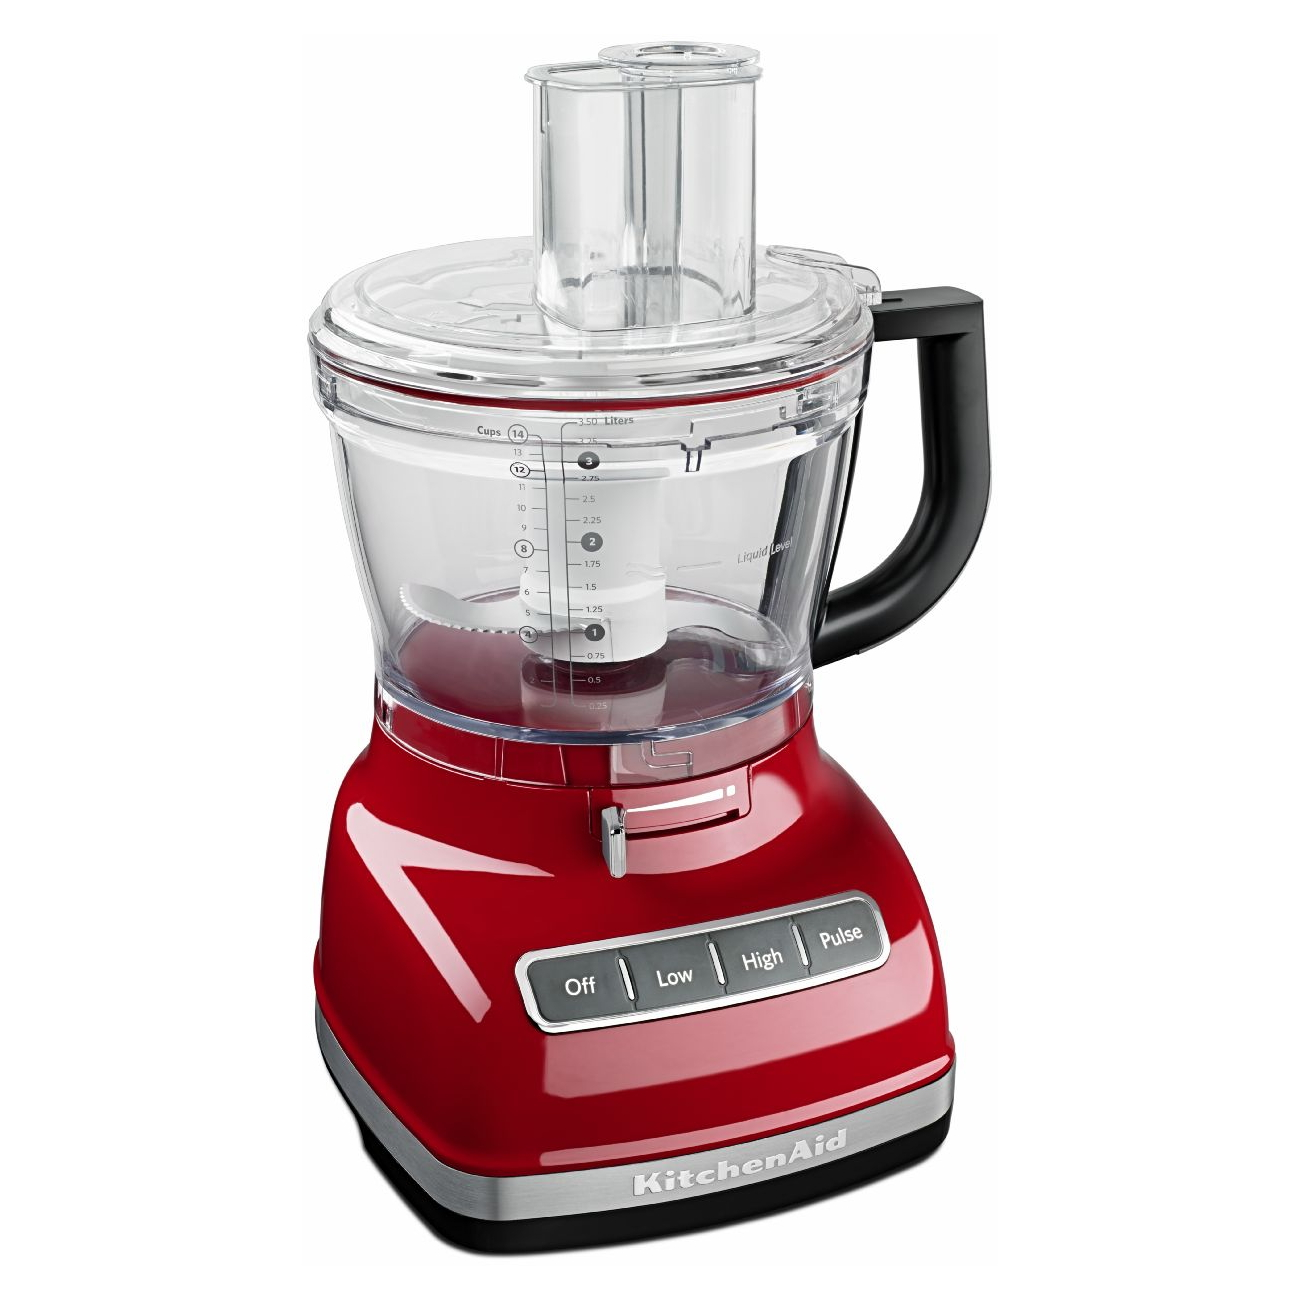 KitchenAid Empire Red 14 Cup Food Processor with ExactSlice System and Dicing Kit